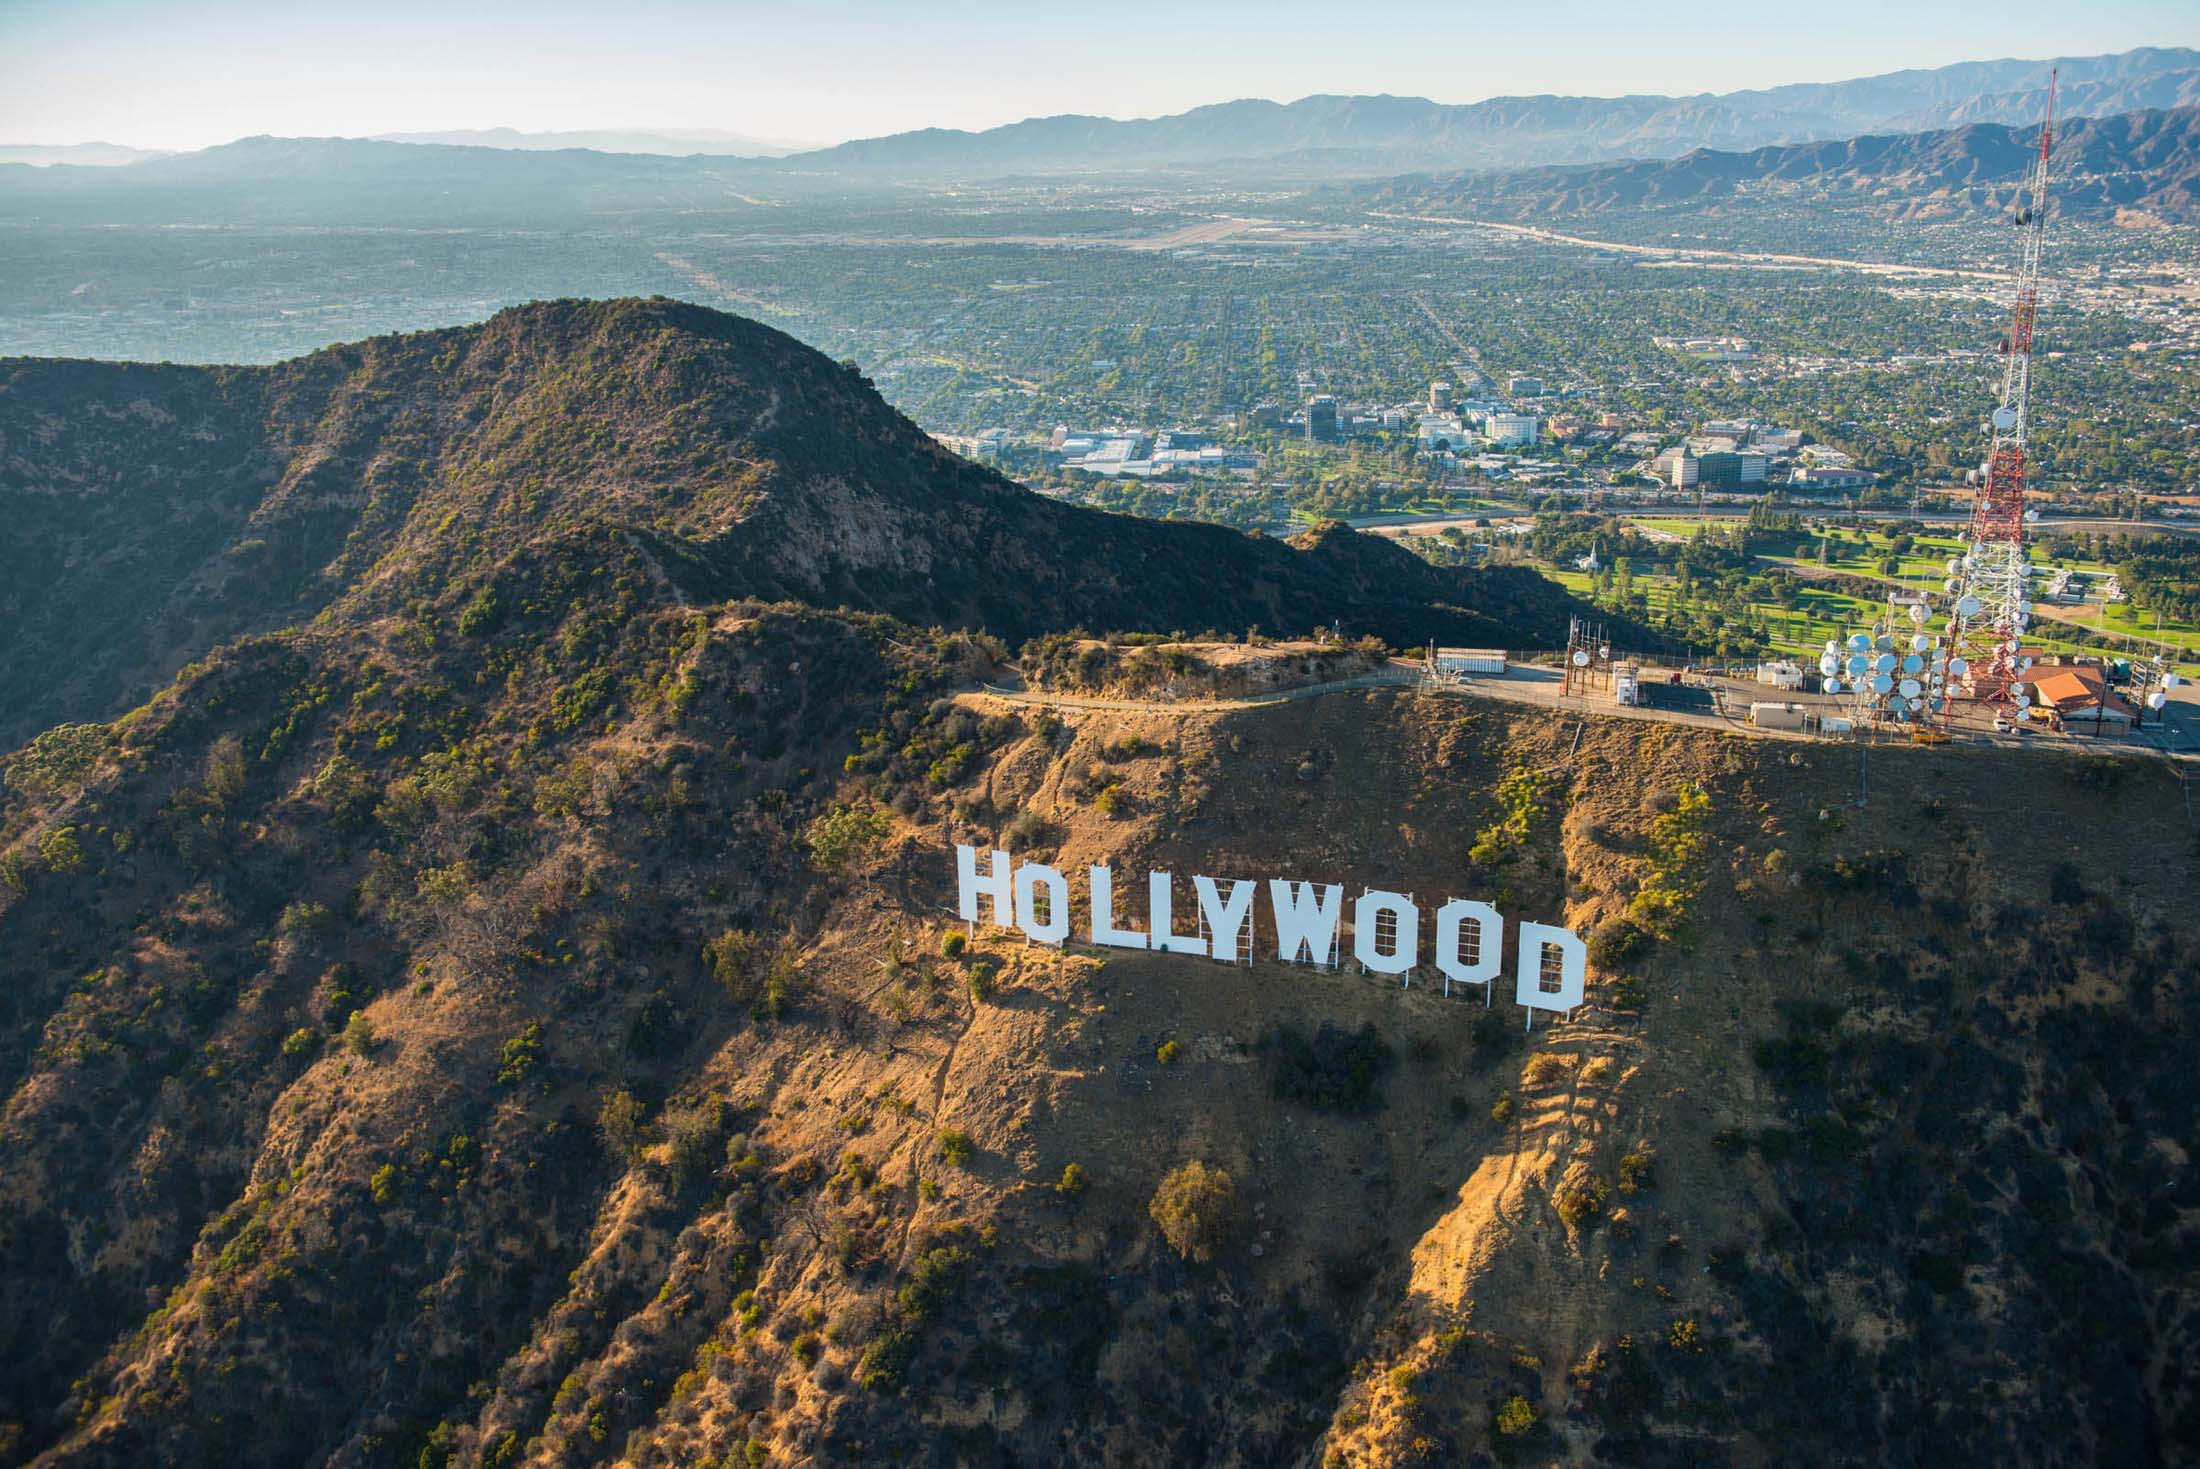 JH Hollywood sign